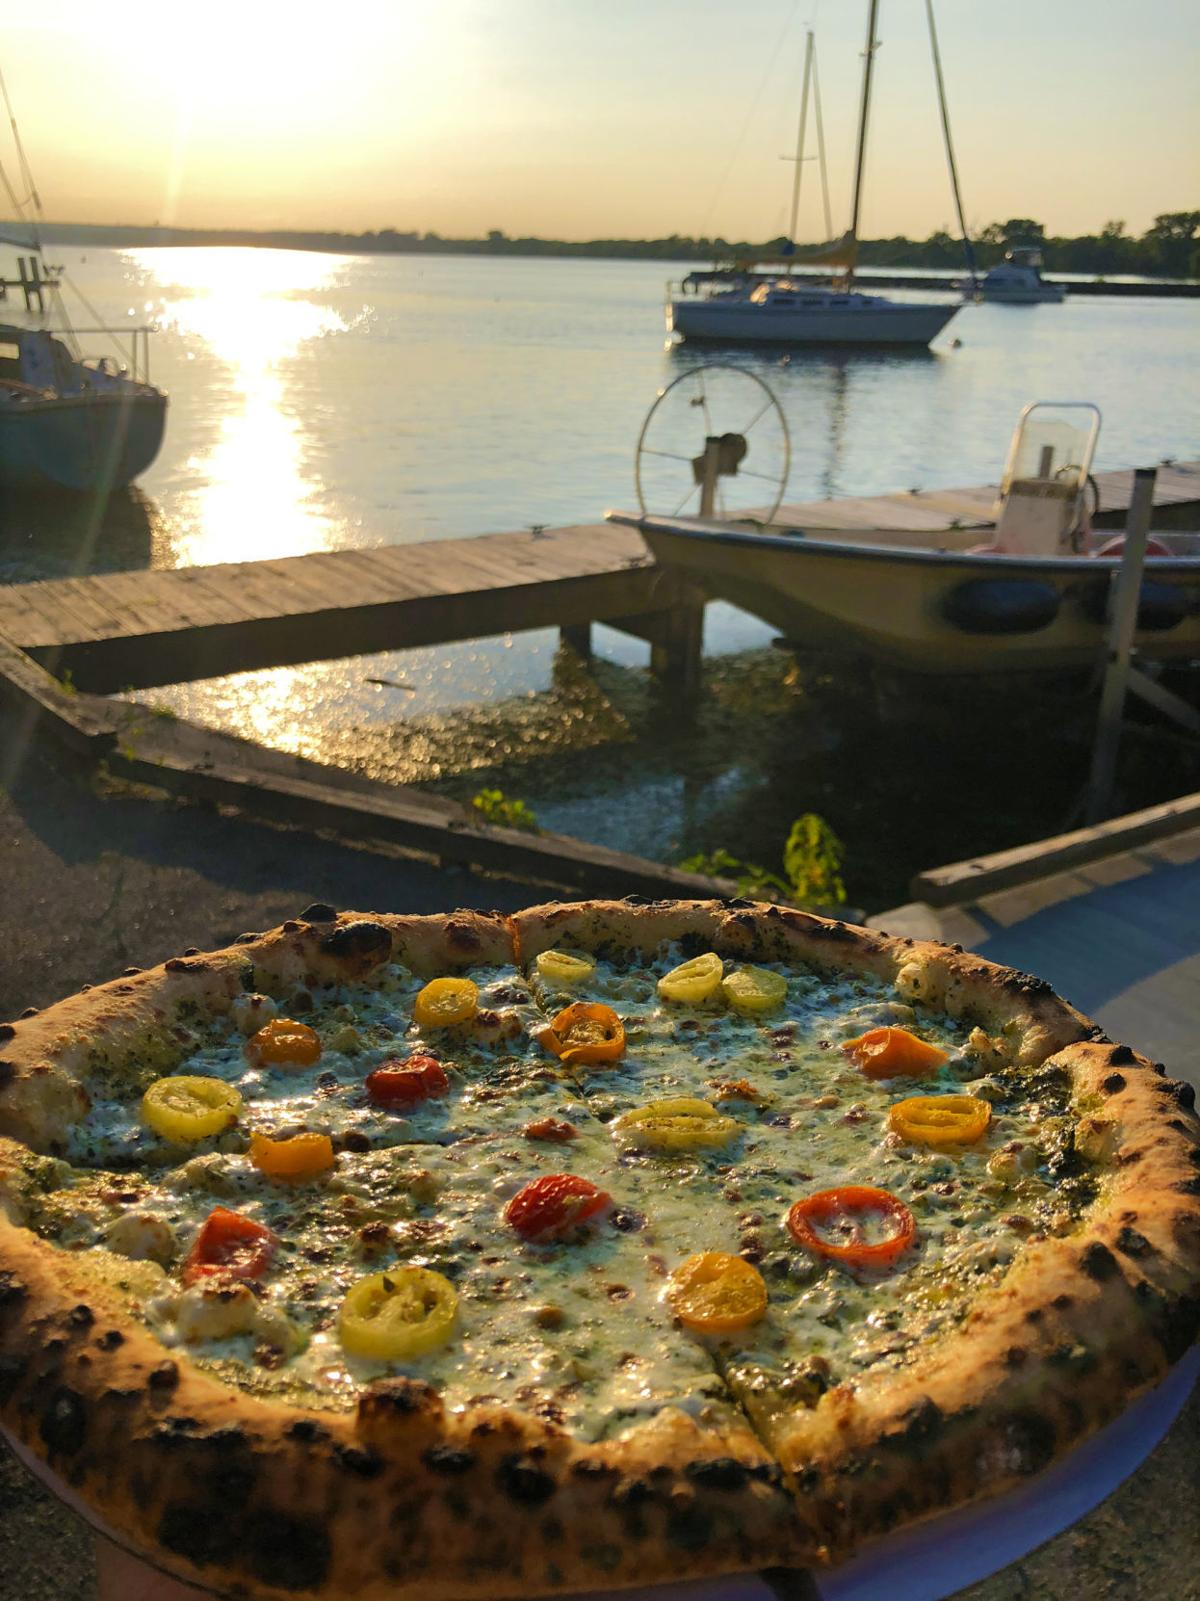 Pizza on the shore